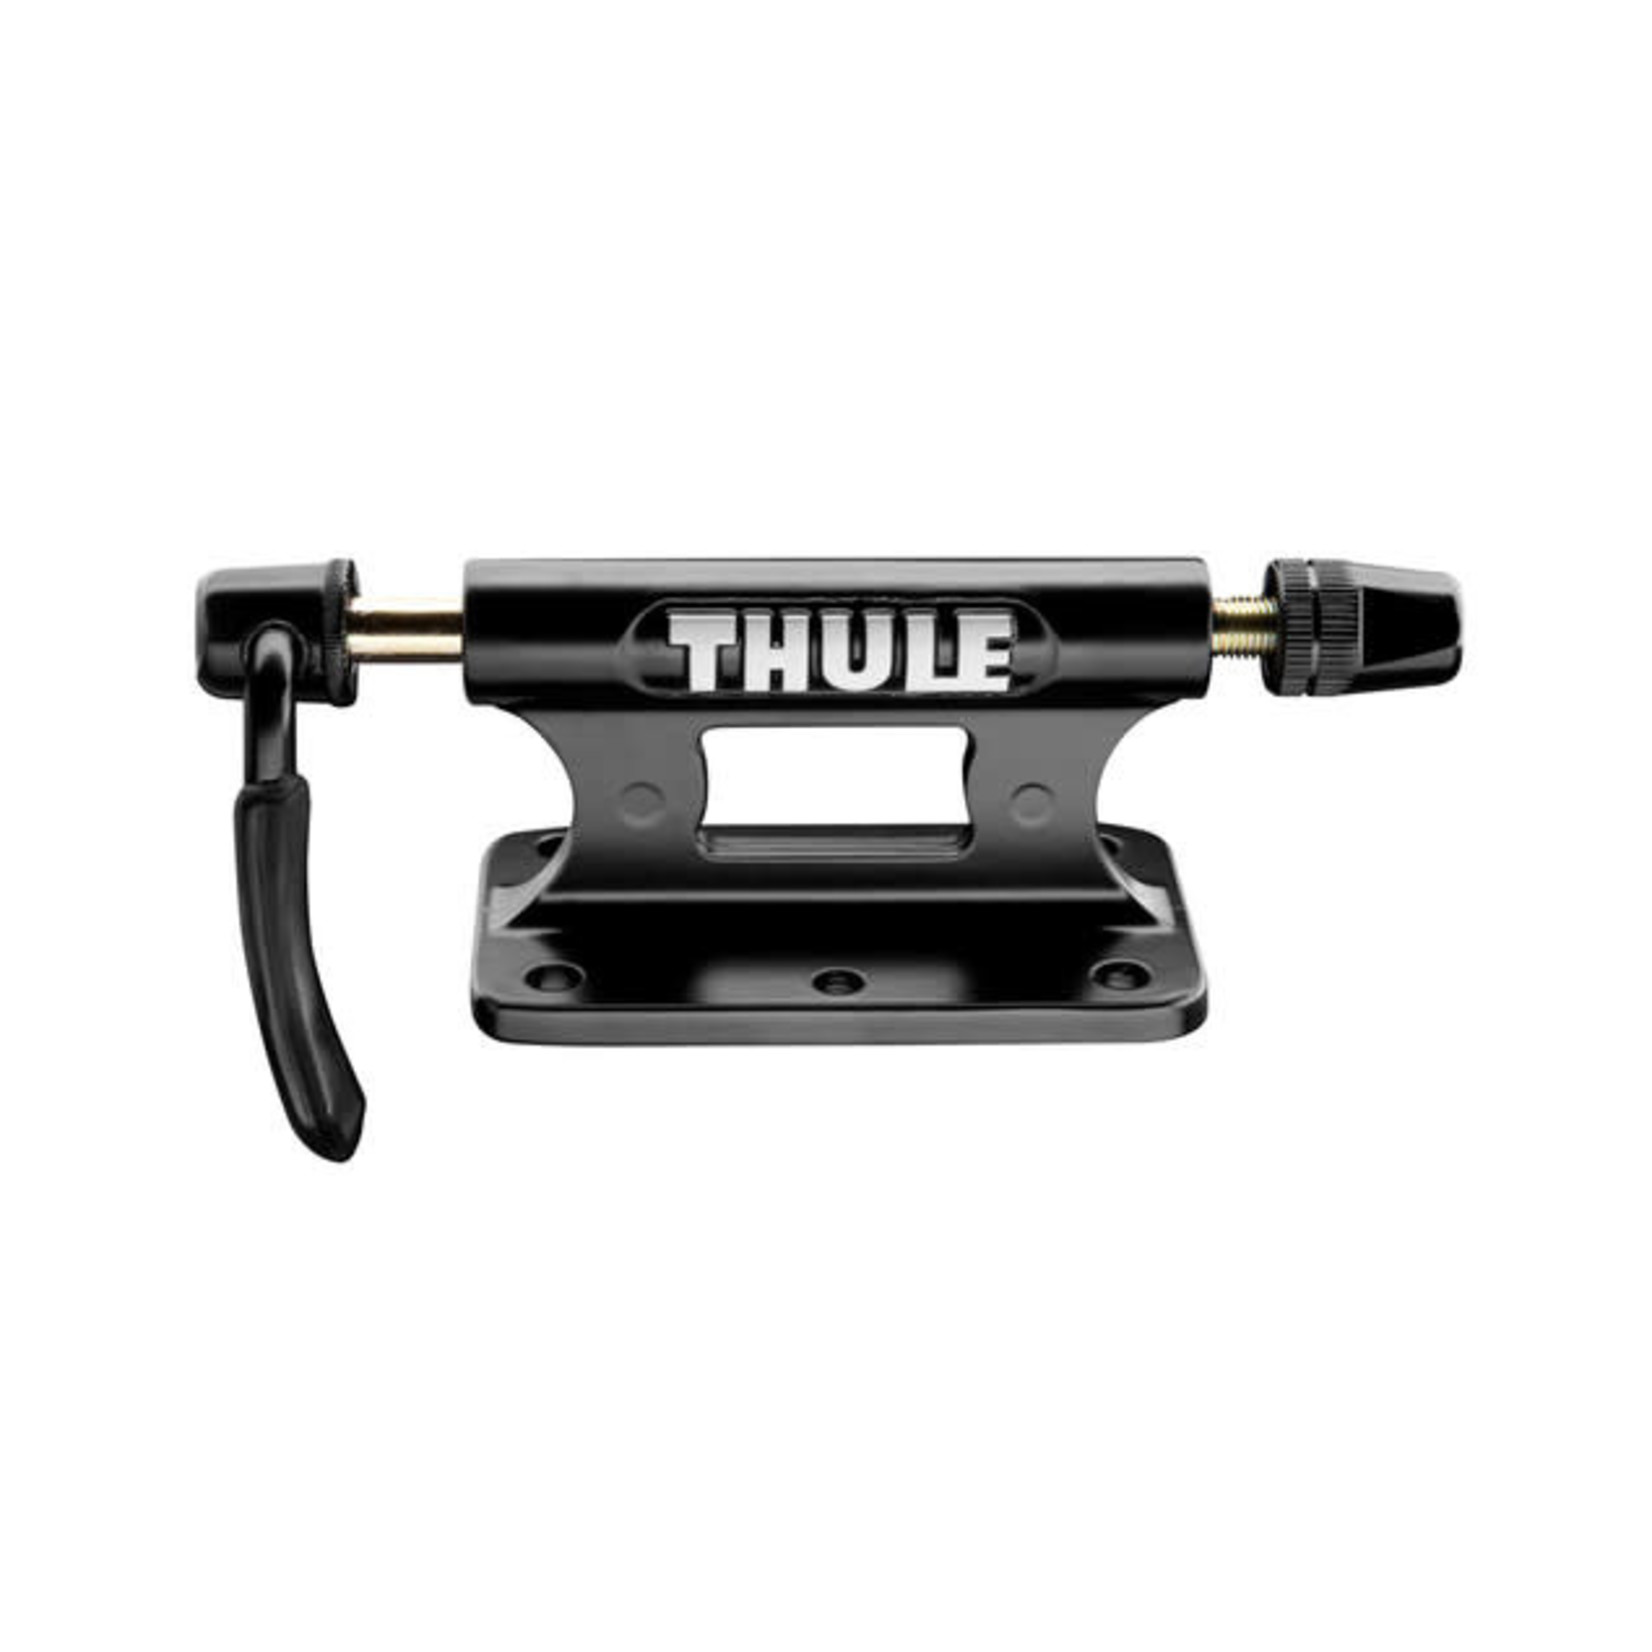 Thule Thule 821 Low Rider Truck Bed Fork Mount